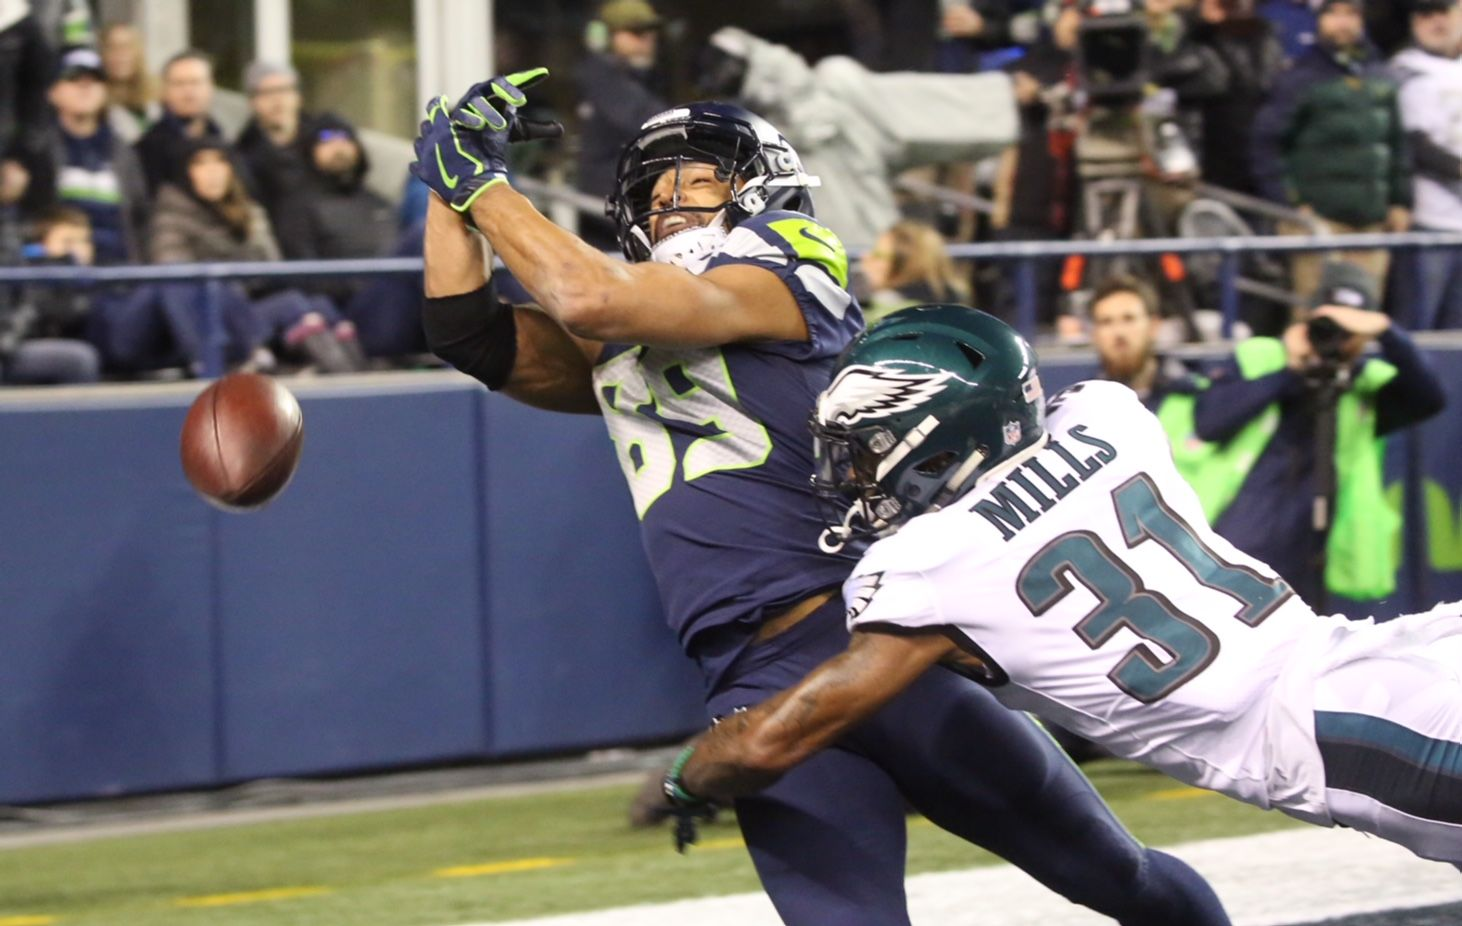 Seahawks play the Eagles at CenturyLink Field in Seattle (Photo: Sy Bean){&nbsp;}<p></p>